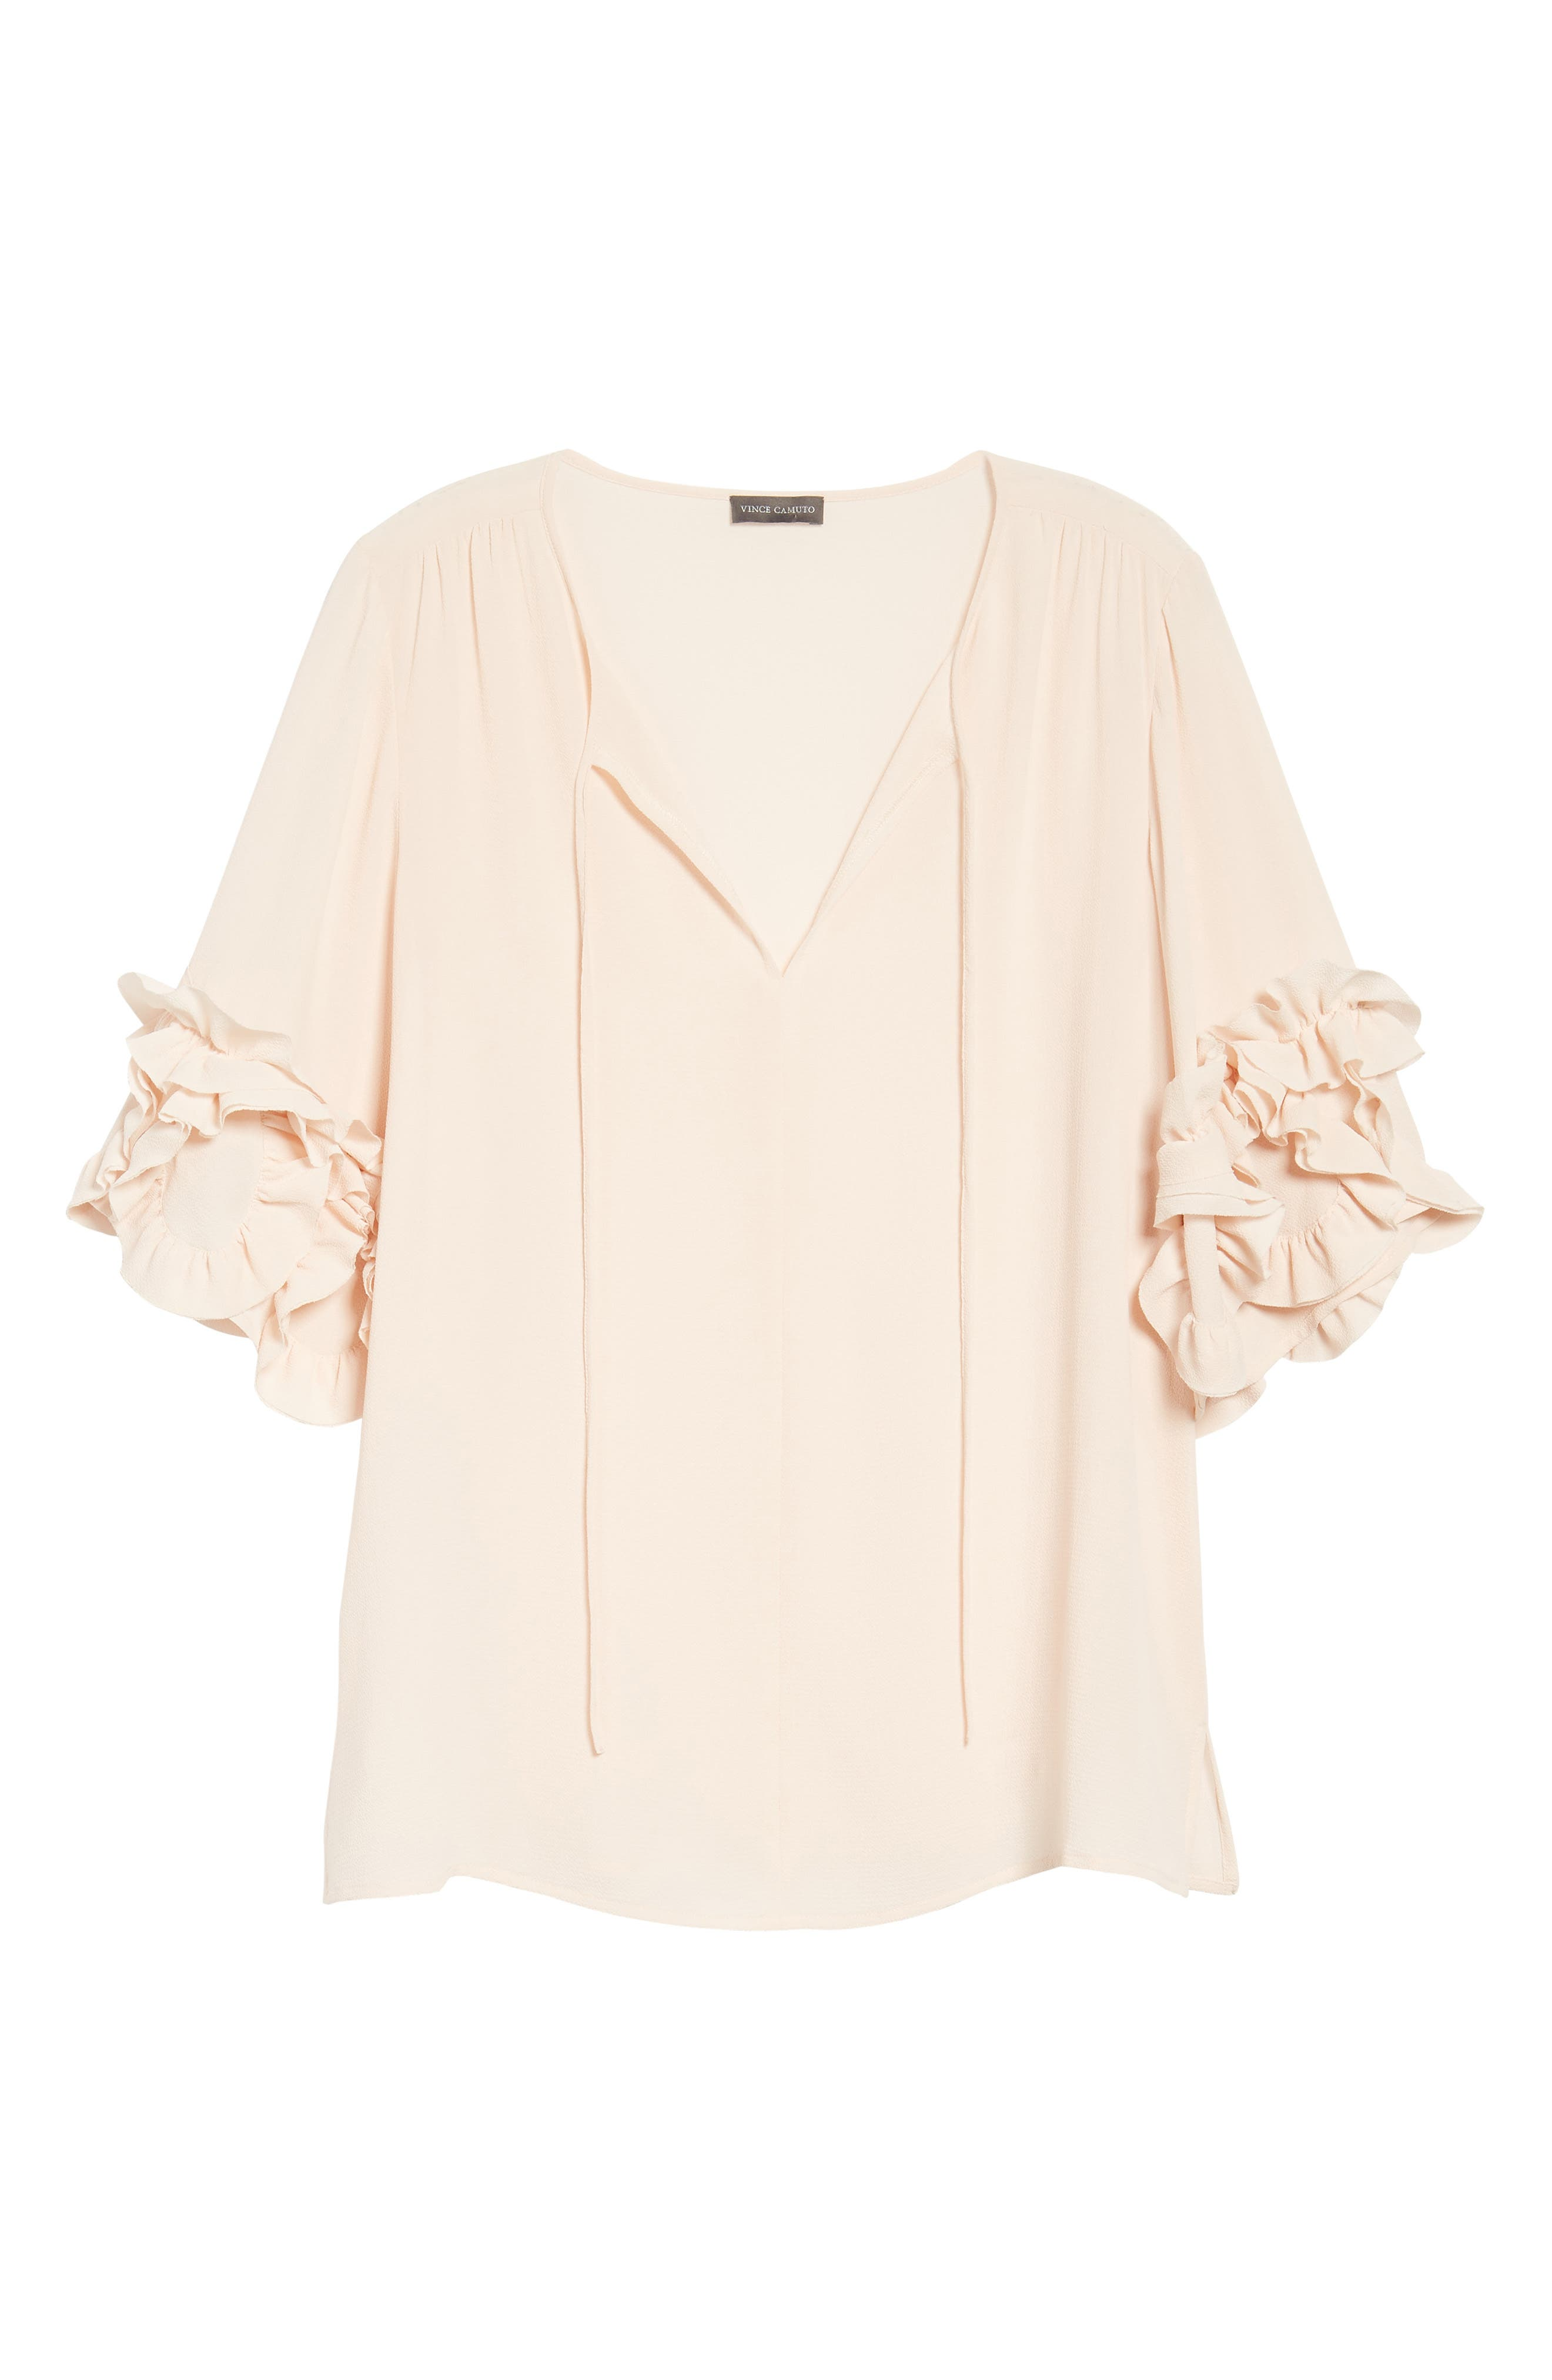 Ruffle Sleeve Tie Neck Blouse,                             Alternate thumbnail 6, color,                             Pink Mist